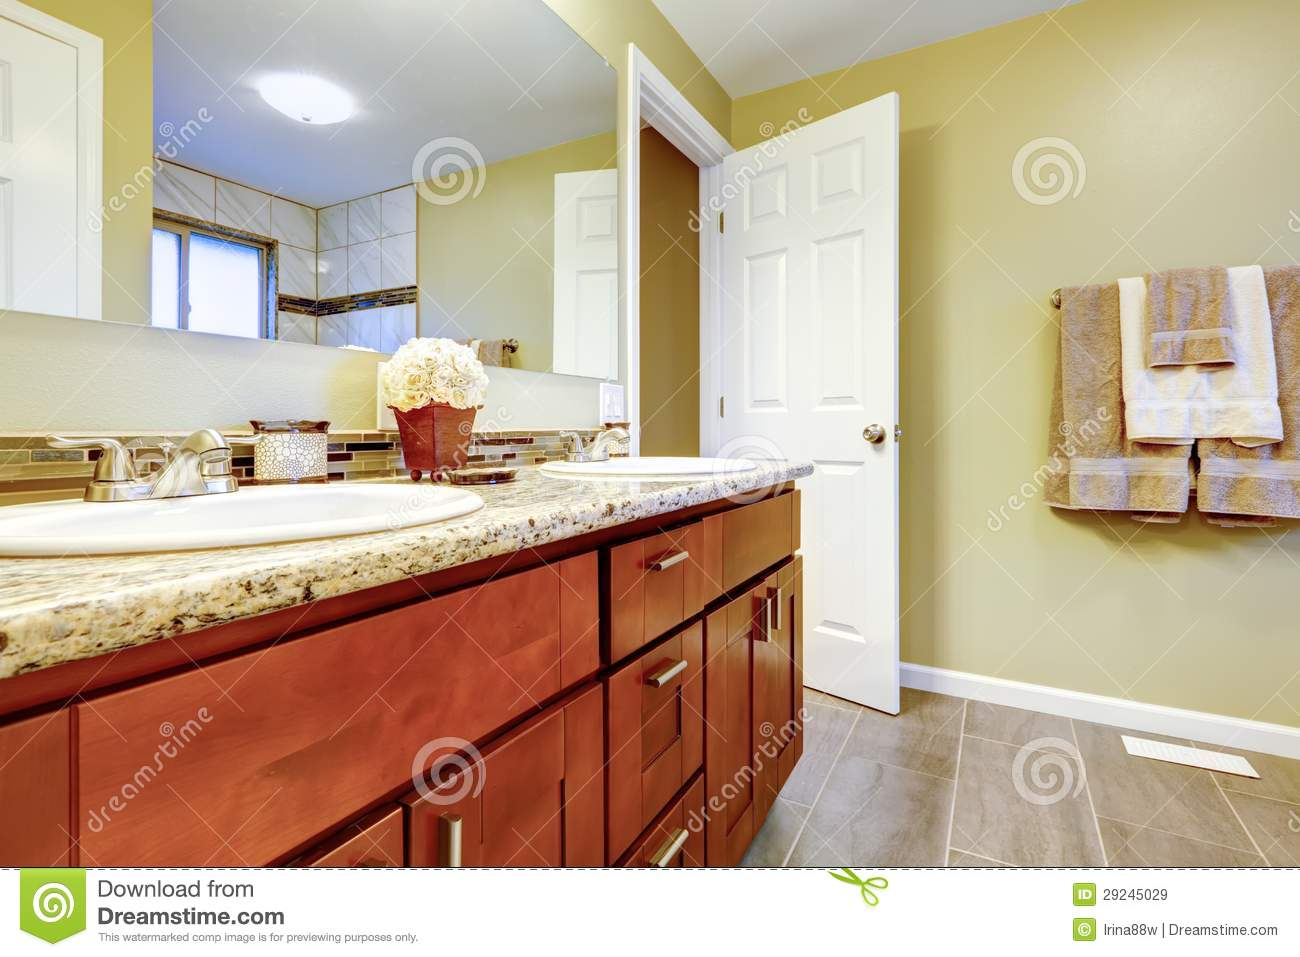 New bathroom interior with cherry sink cabinet royalty for Latest bathroom interior